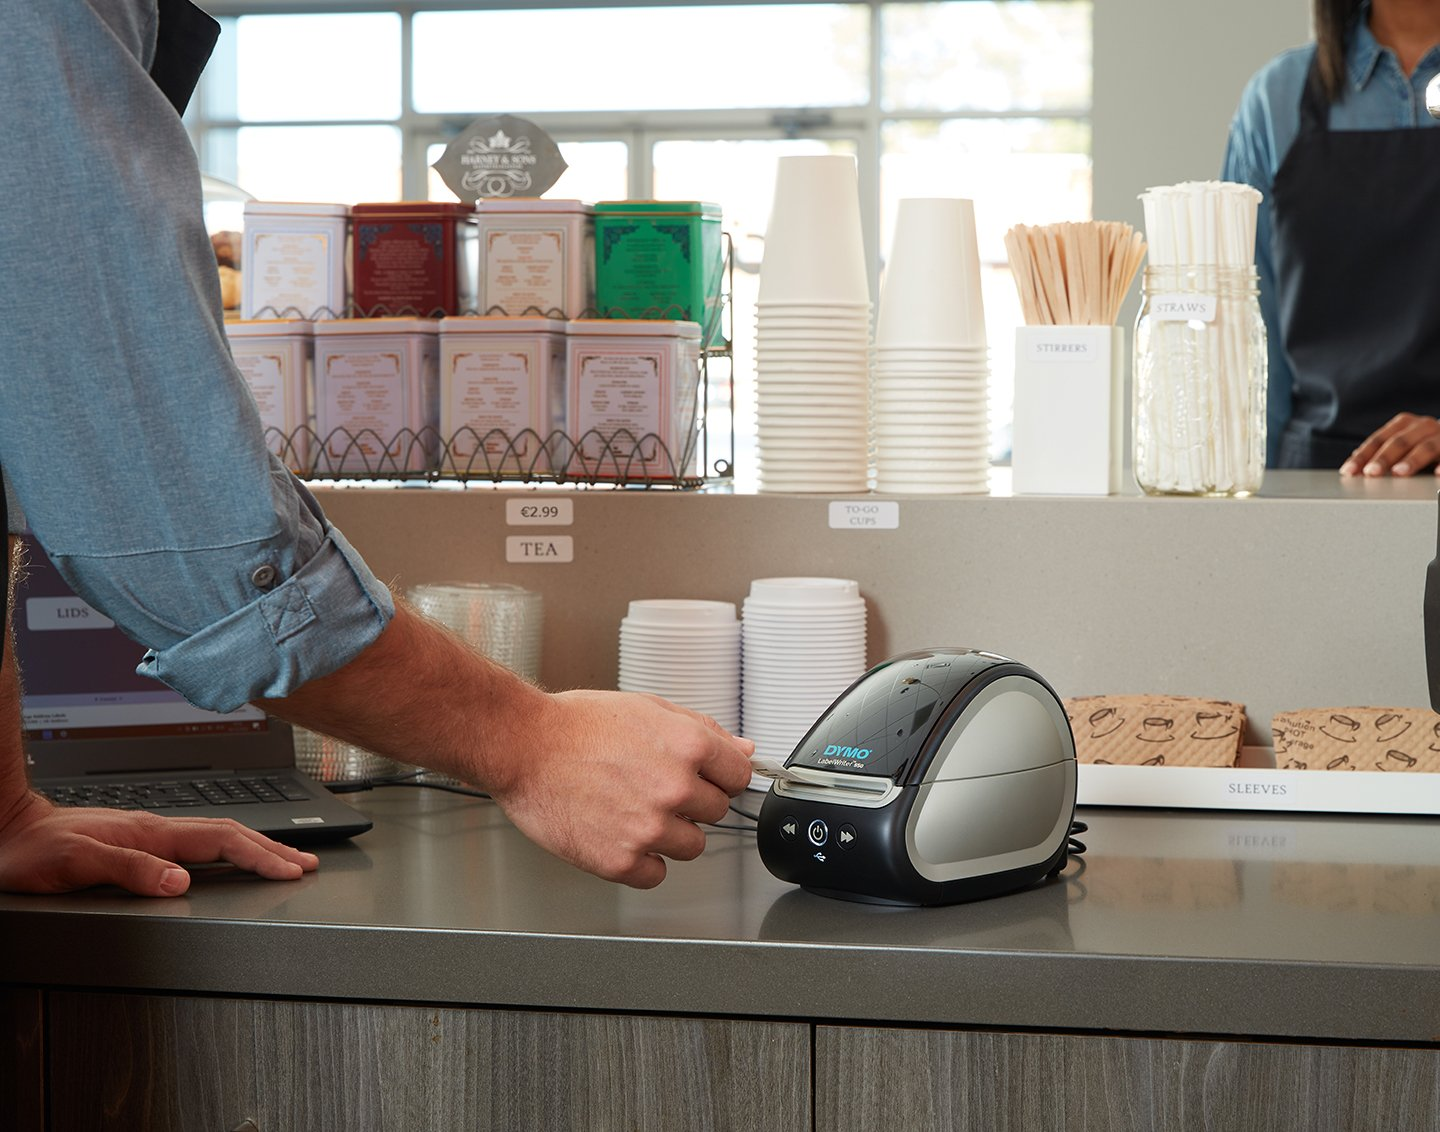 A label writer printing a label on a countertop.